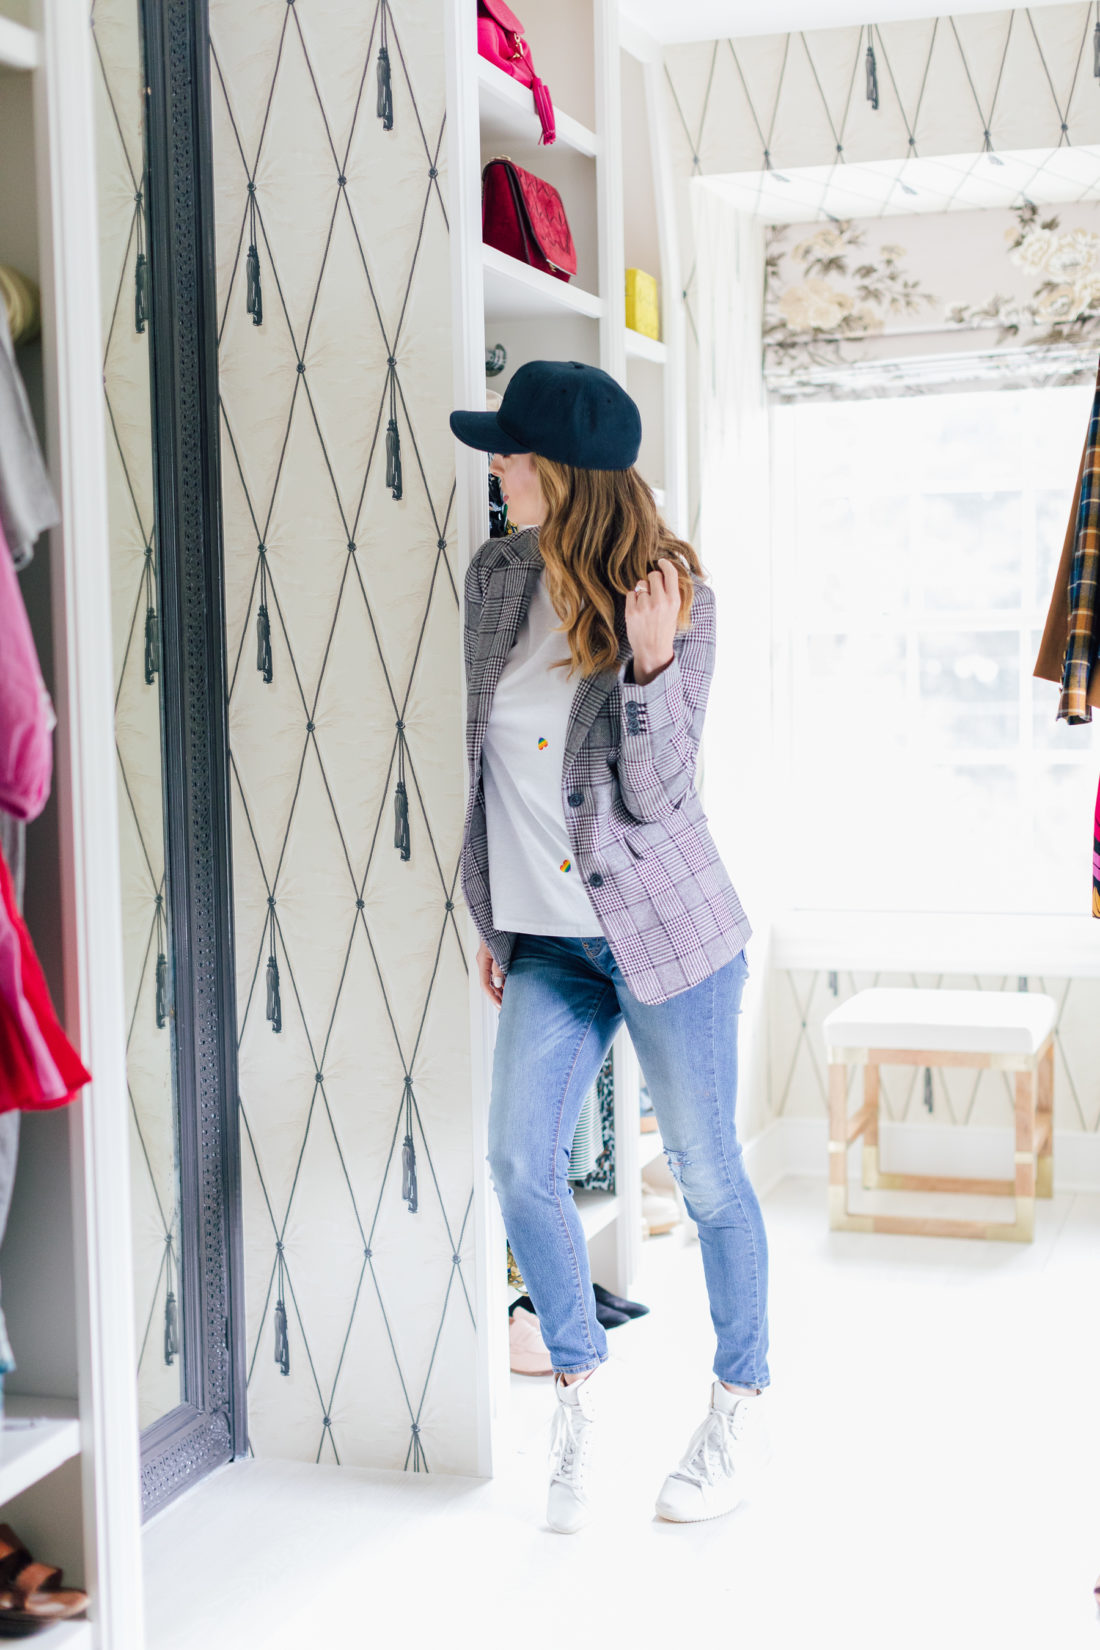 Eva Amurri Martino wears a fall blazer in her walk-in closet